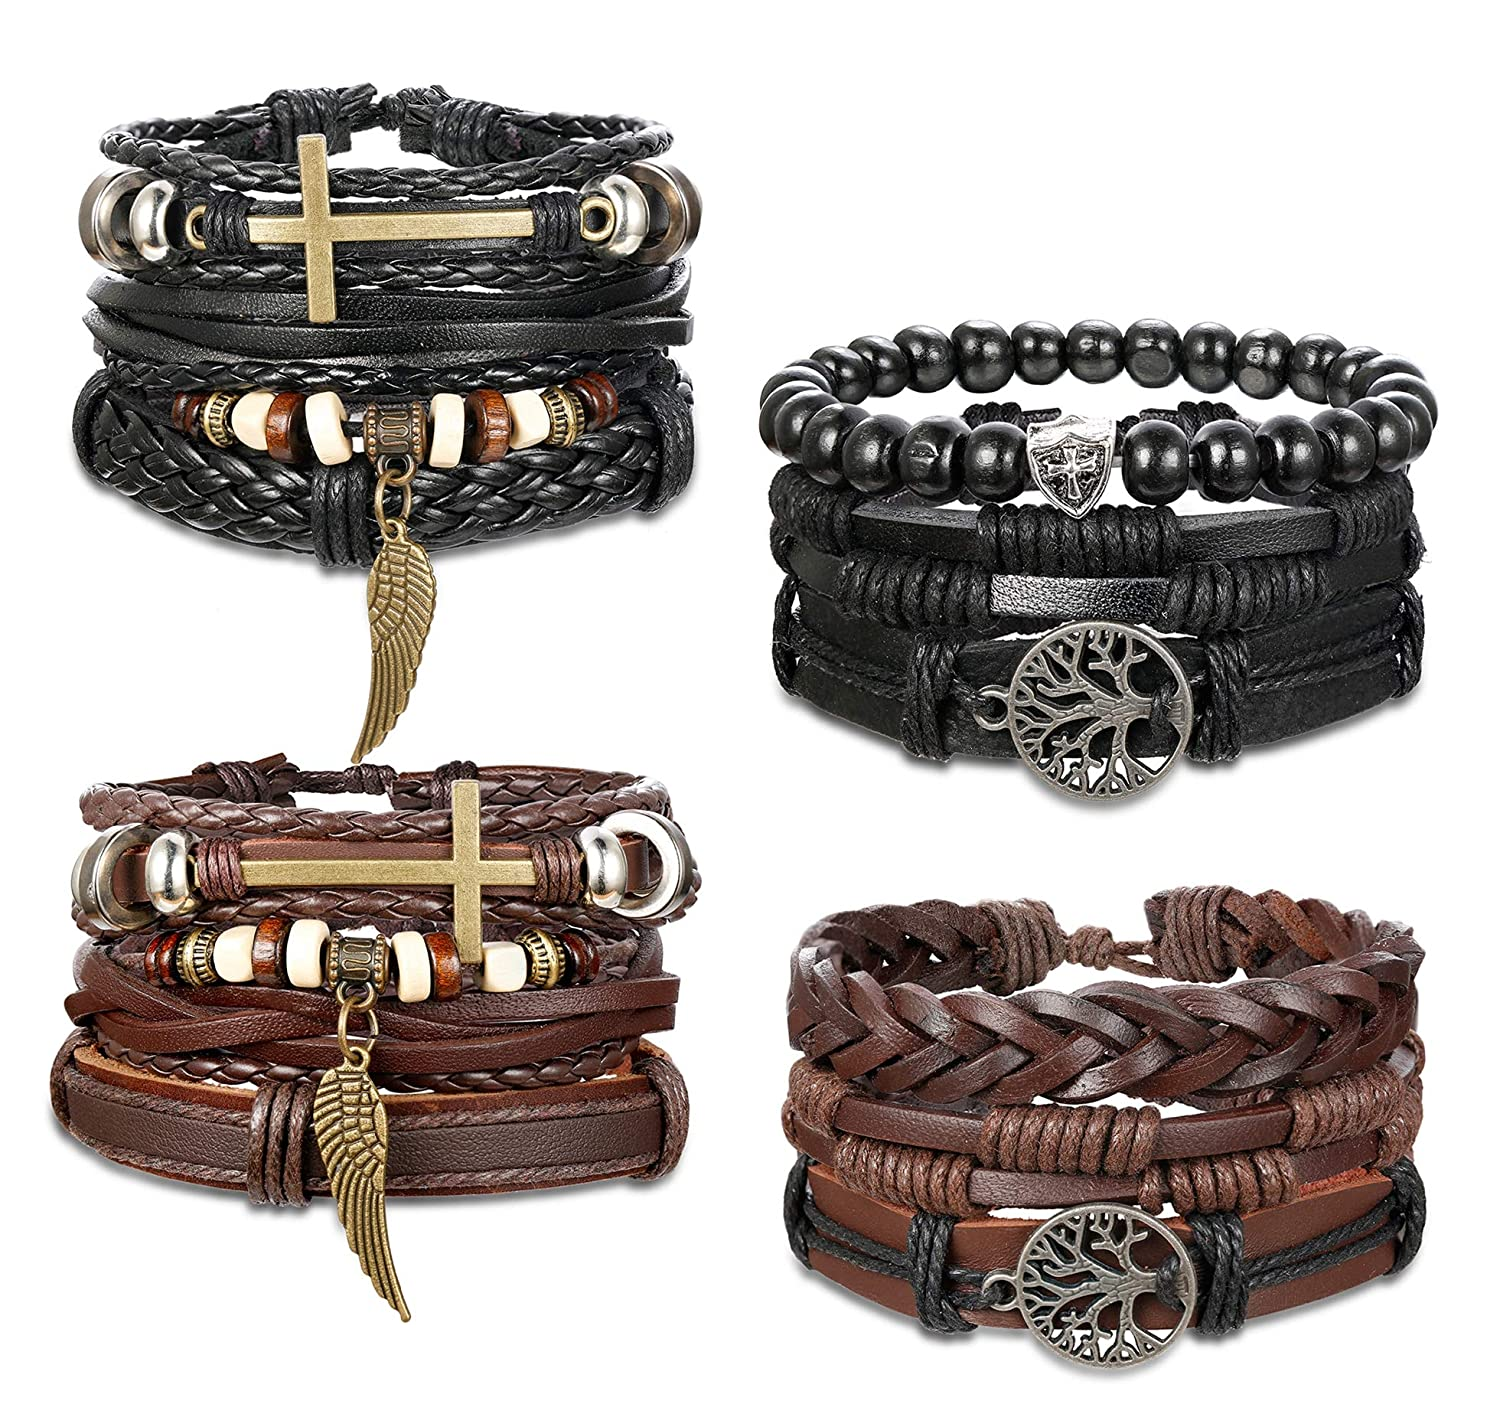 Yadoca 12 Pcs Mens Leather Bracelet Cuff Wrap Bracelets Women Braided Cord Handmade Jewelry Black Brown Set Adjustable